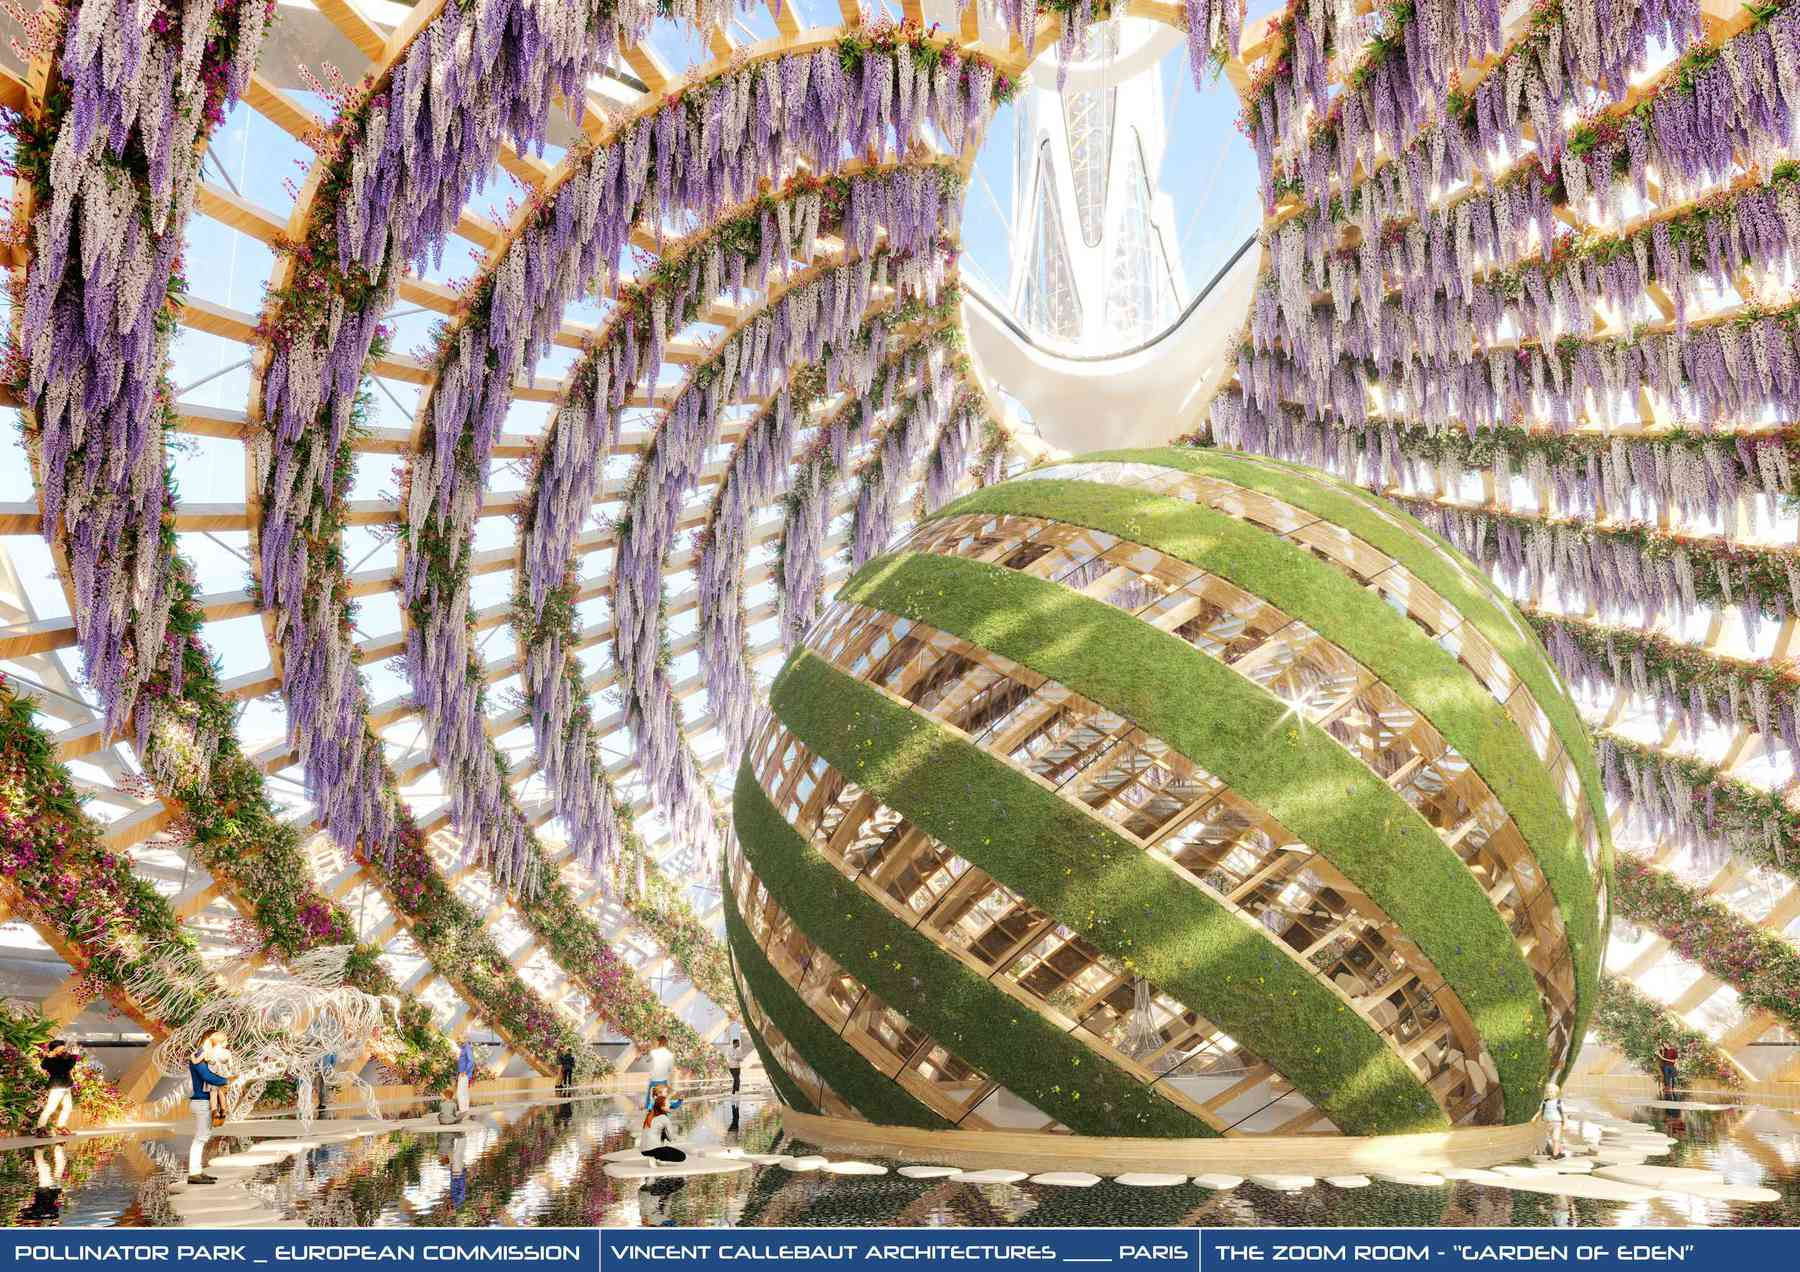 Pollinator Park - credit photo and rendere Vincent Callebaut Architects and European Commission